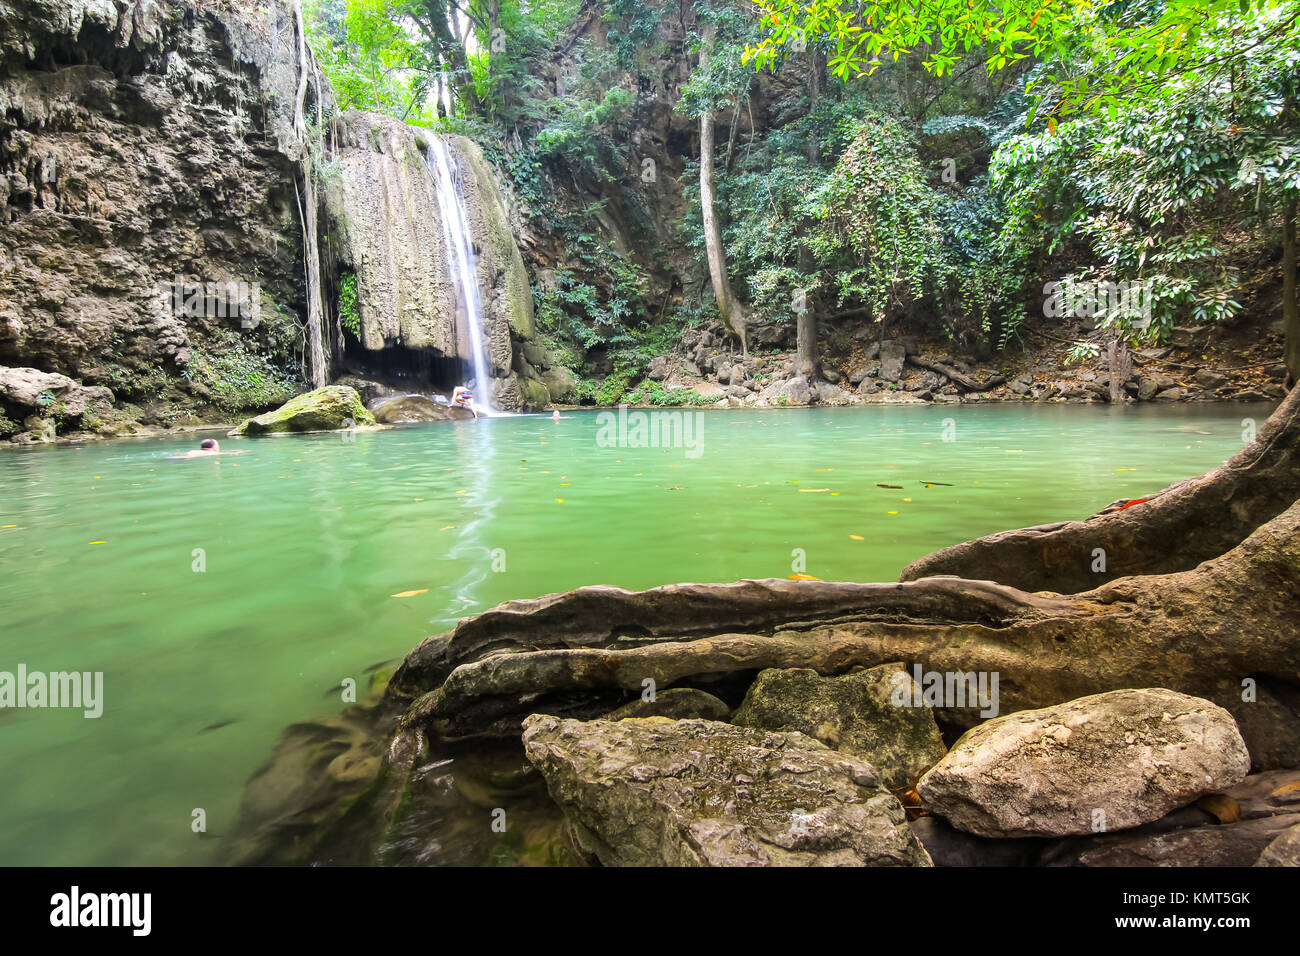 Erawan Waterfall in Erawan National Park Kanchanaburi, Thailand - Stock Image